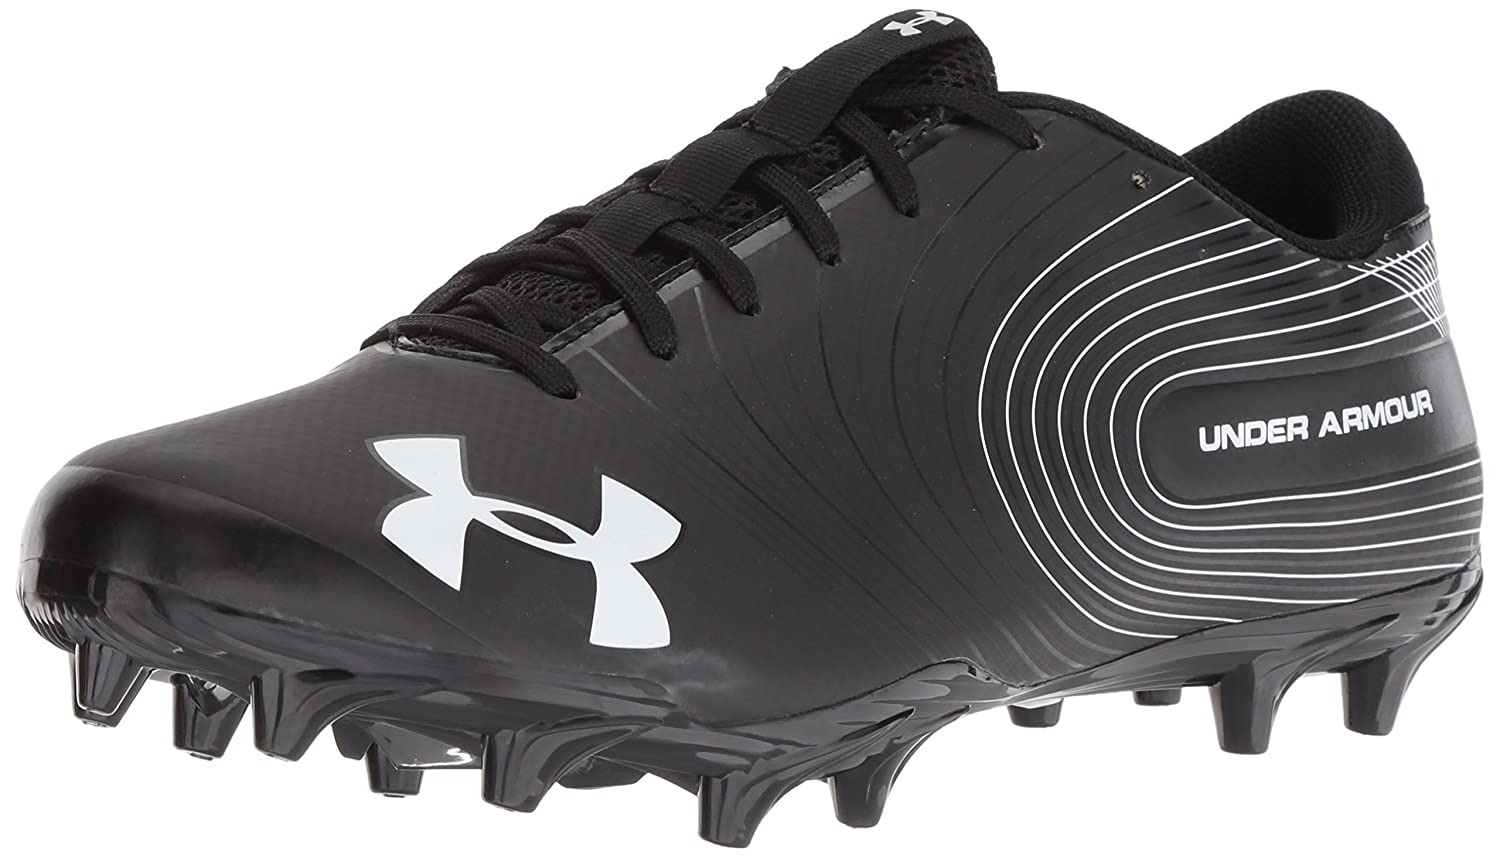 Under Armour Men's Speed Phantom MC Football Shoe, Black/White 3000169